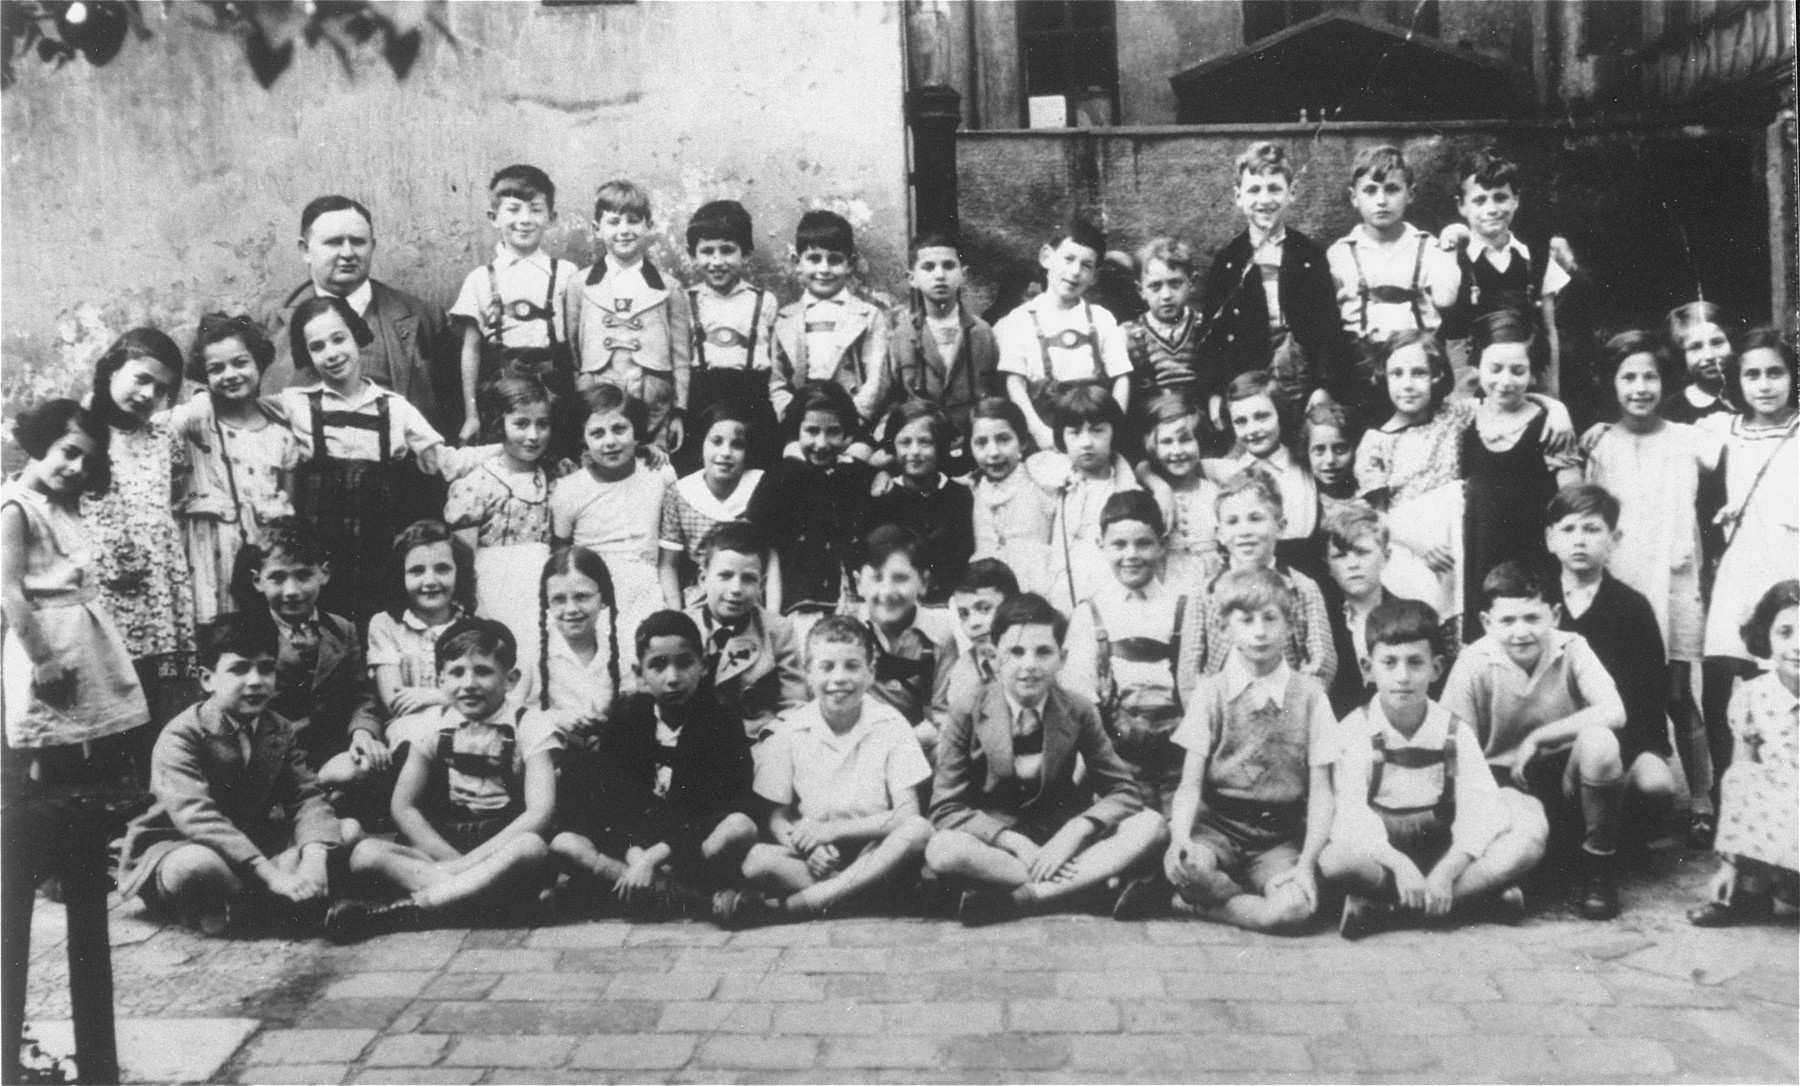 Class portrait of the third grade at the Juedische Volksschule in Munich.   On November 25, 1941 sixteen of these children were sent to Kaunas, Lithuania, where they were shot in the Ninth Fort.  Among those pictured are: top row: the teacher, Julius Kissinger (top row, left); Jacki Alster (top row, second from the left), Manni Busch (top row, third from the left), Manni Busch's younger brother (top row, fourth from the left), Erich Kupfer (an orphan from the Jewish orphanage in Munich, who was later deported to Auschwitz, top row, fourth from the right), and Harald Zernik (who was also deported to Auschwitz).  Second row from the top: Ester Berger (an orphan who was later deported to Auschwitz, left), Ricki Leidel (third from the left), Eva Blutenberg and her sister Ruth (eighth and ninth from the left), Susie Scherz (ninth from the right), Bertl Sandbank (who was later deported to Auschwitz, fourth from the right).  Third row from the top: Guenter Hess (left), Manfred Pollak (an orphan, who was later deported to Auschwitz, eighth from the left), and Hilde Weissmann (at the extreme right). [oversized print]